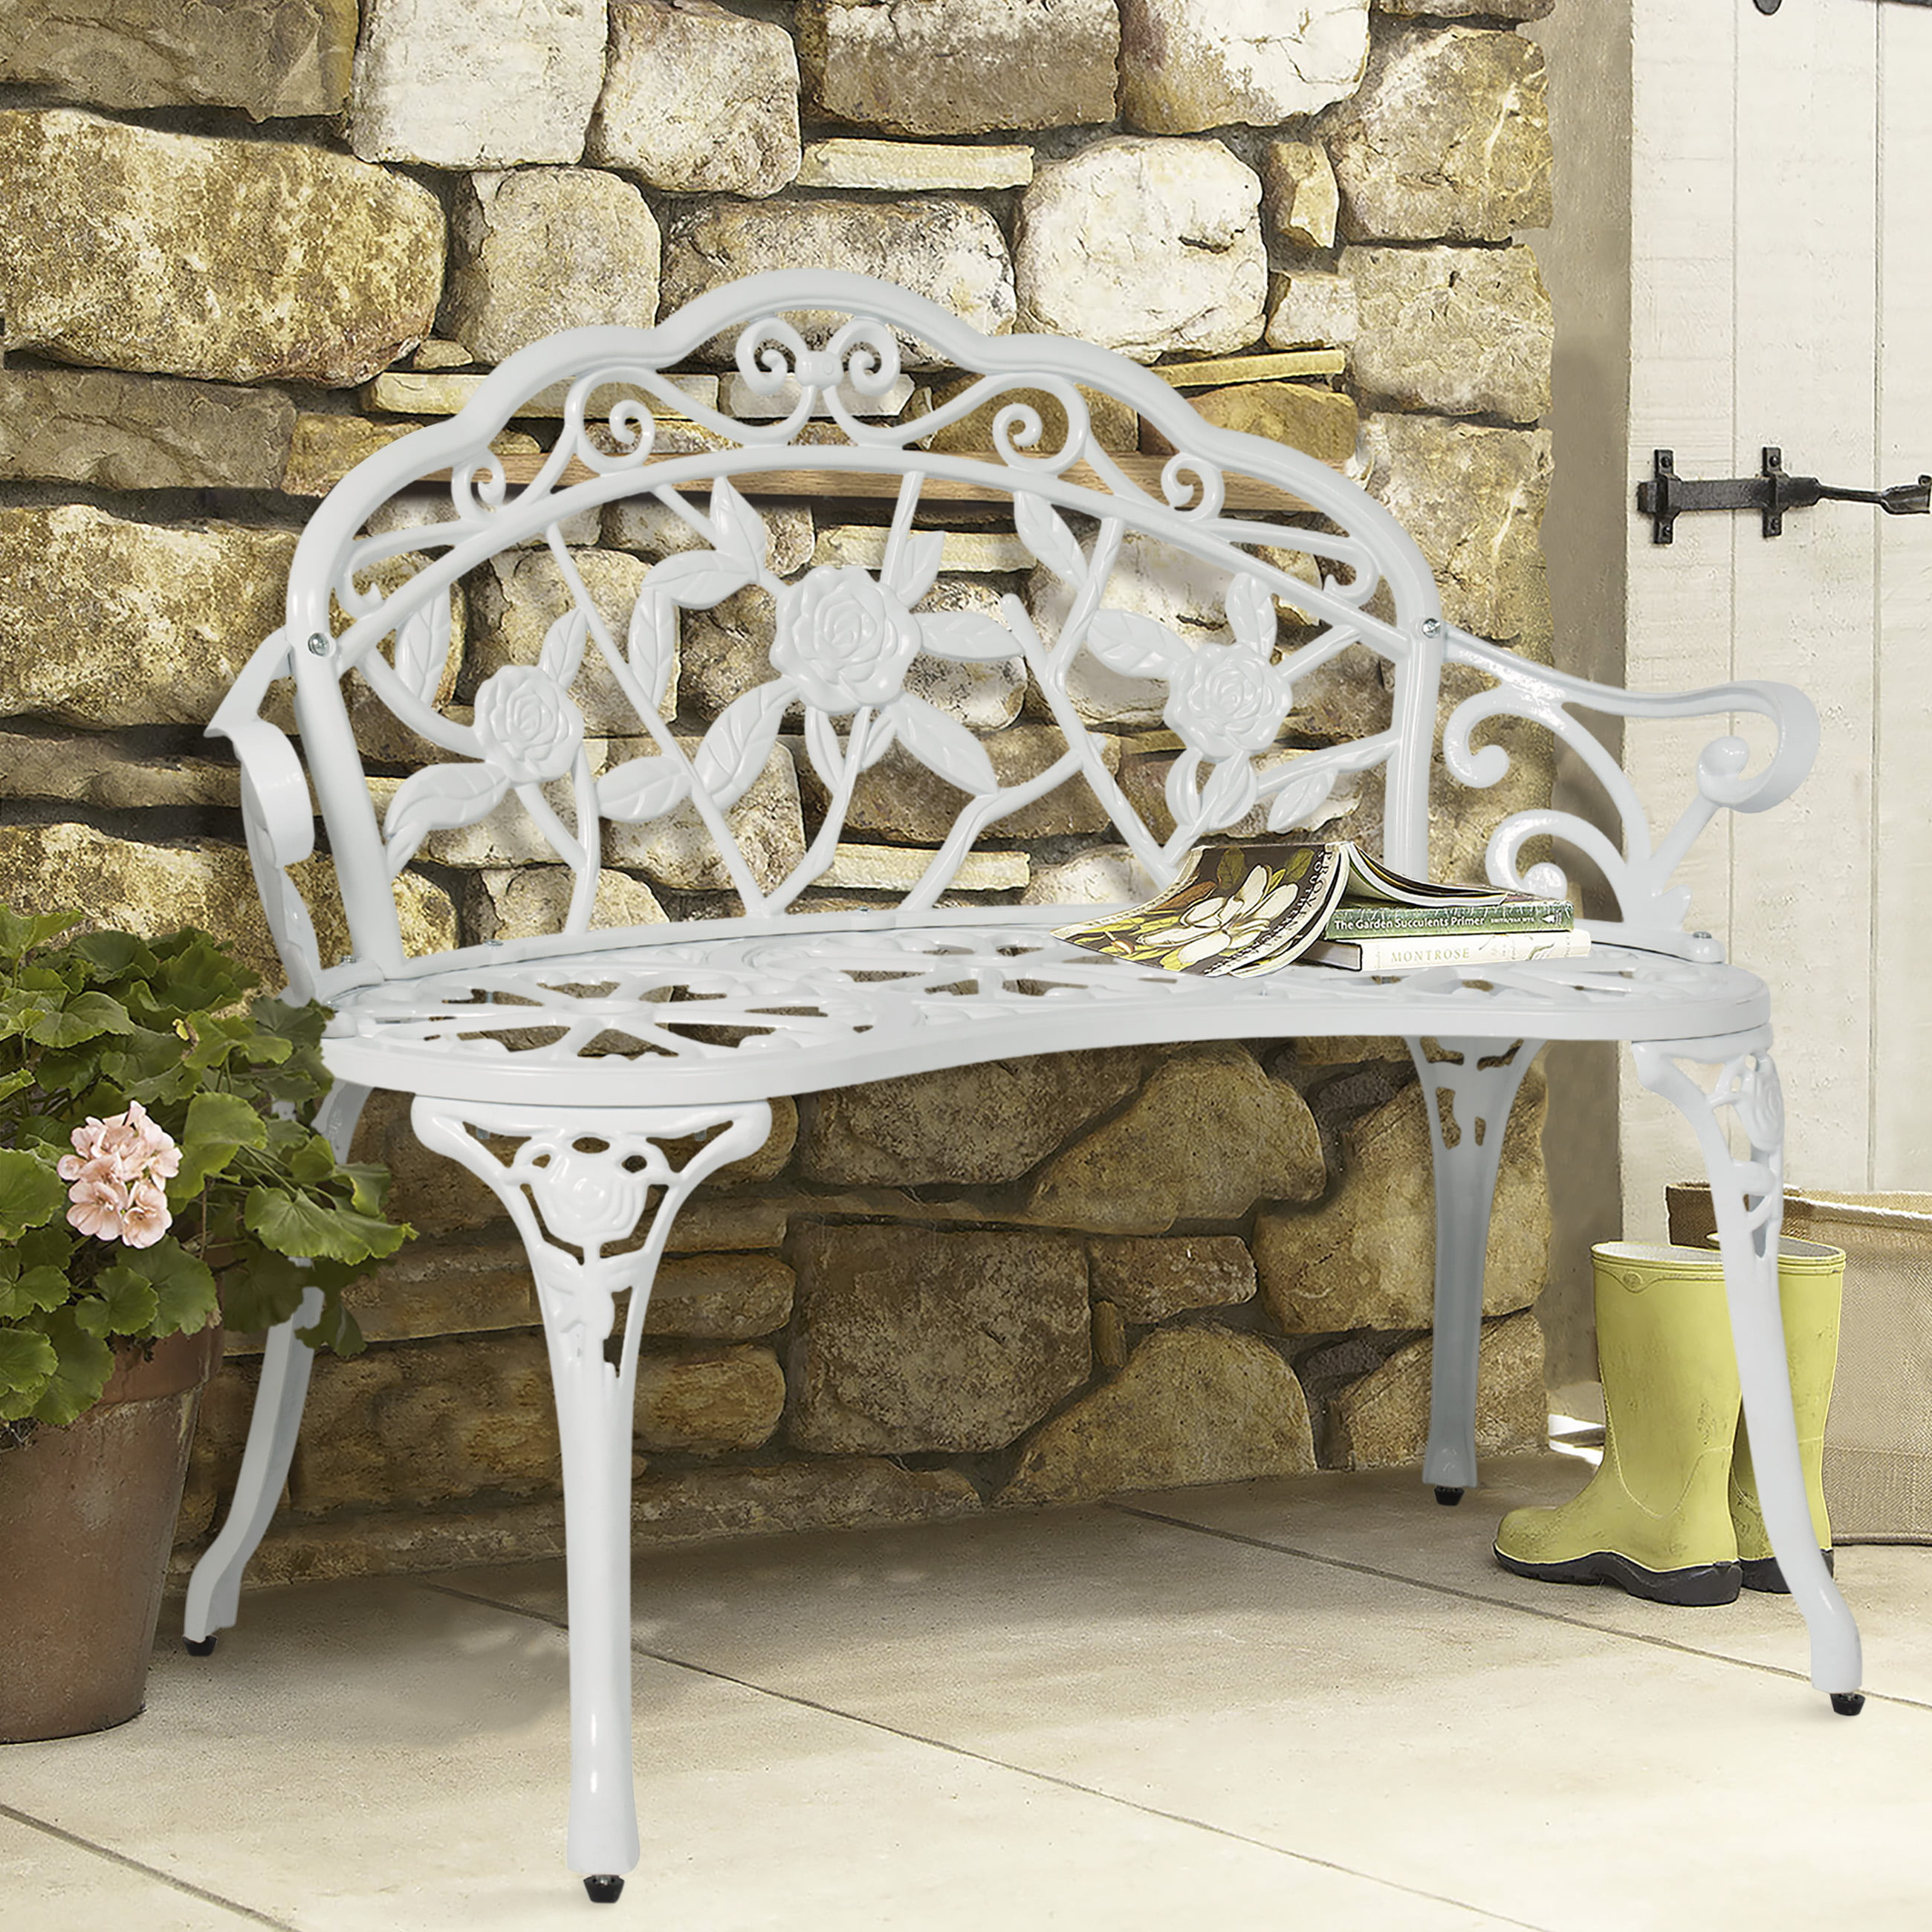 Best Choice Products Floral Rose Accented Metal Garden Patio Bench w  Antique Finish White by